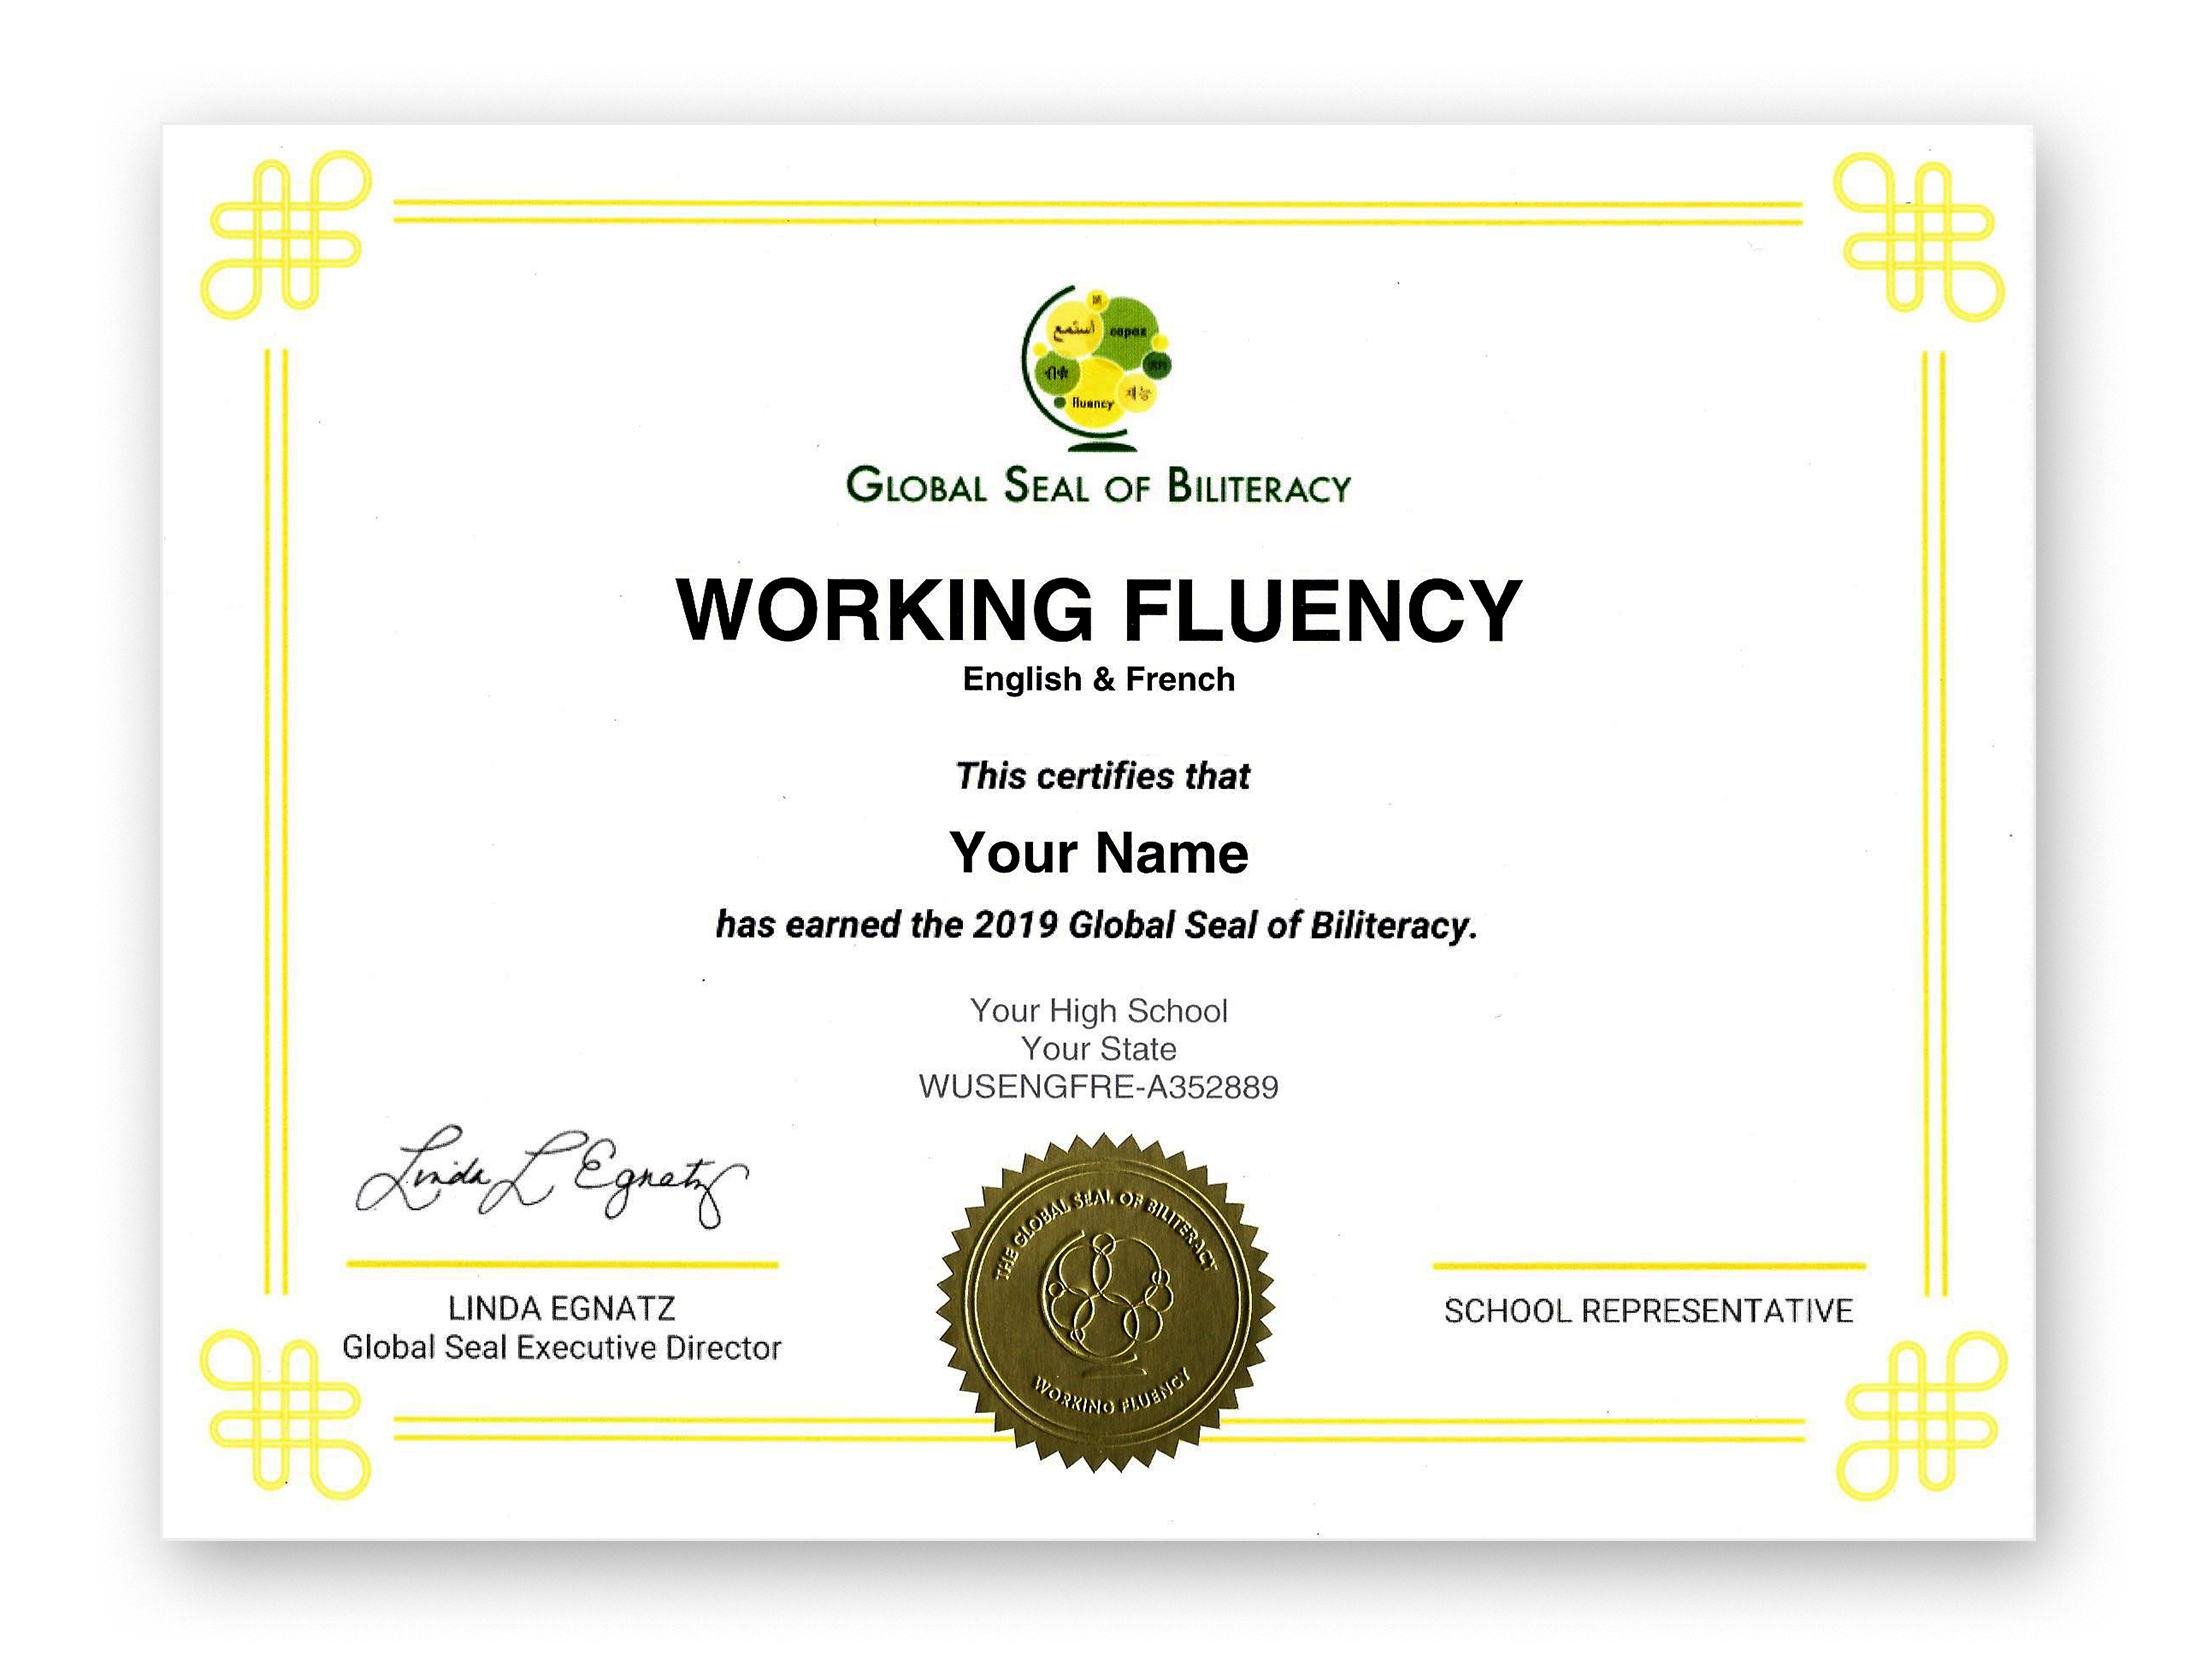 Shown above is the Global Seal of Biliteracy Working Fluency certificate which is unique to each recipient.